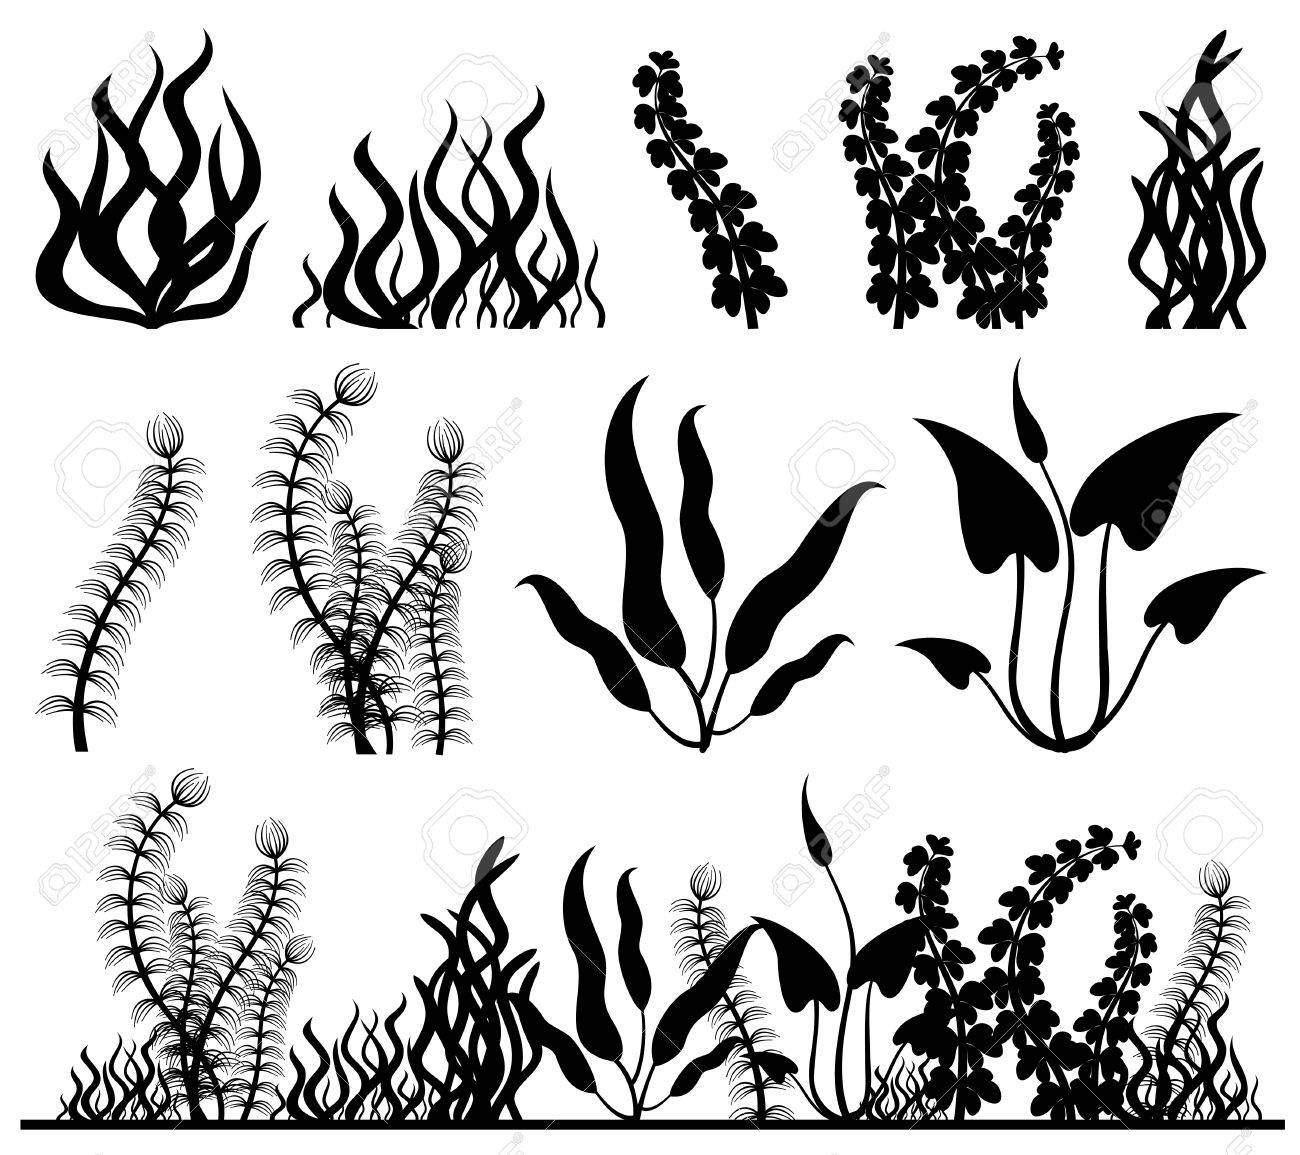 407 Seaweed free clipart.